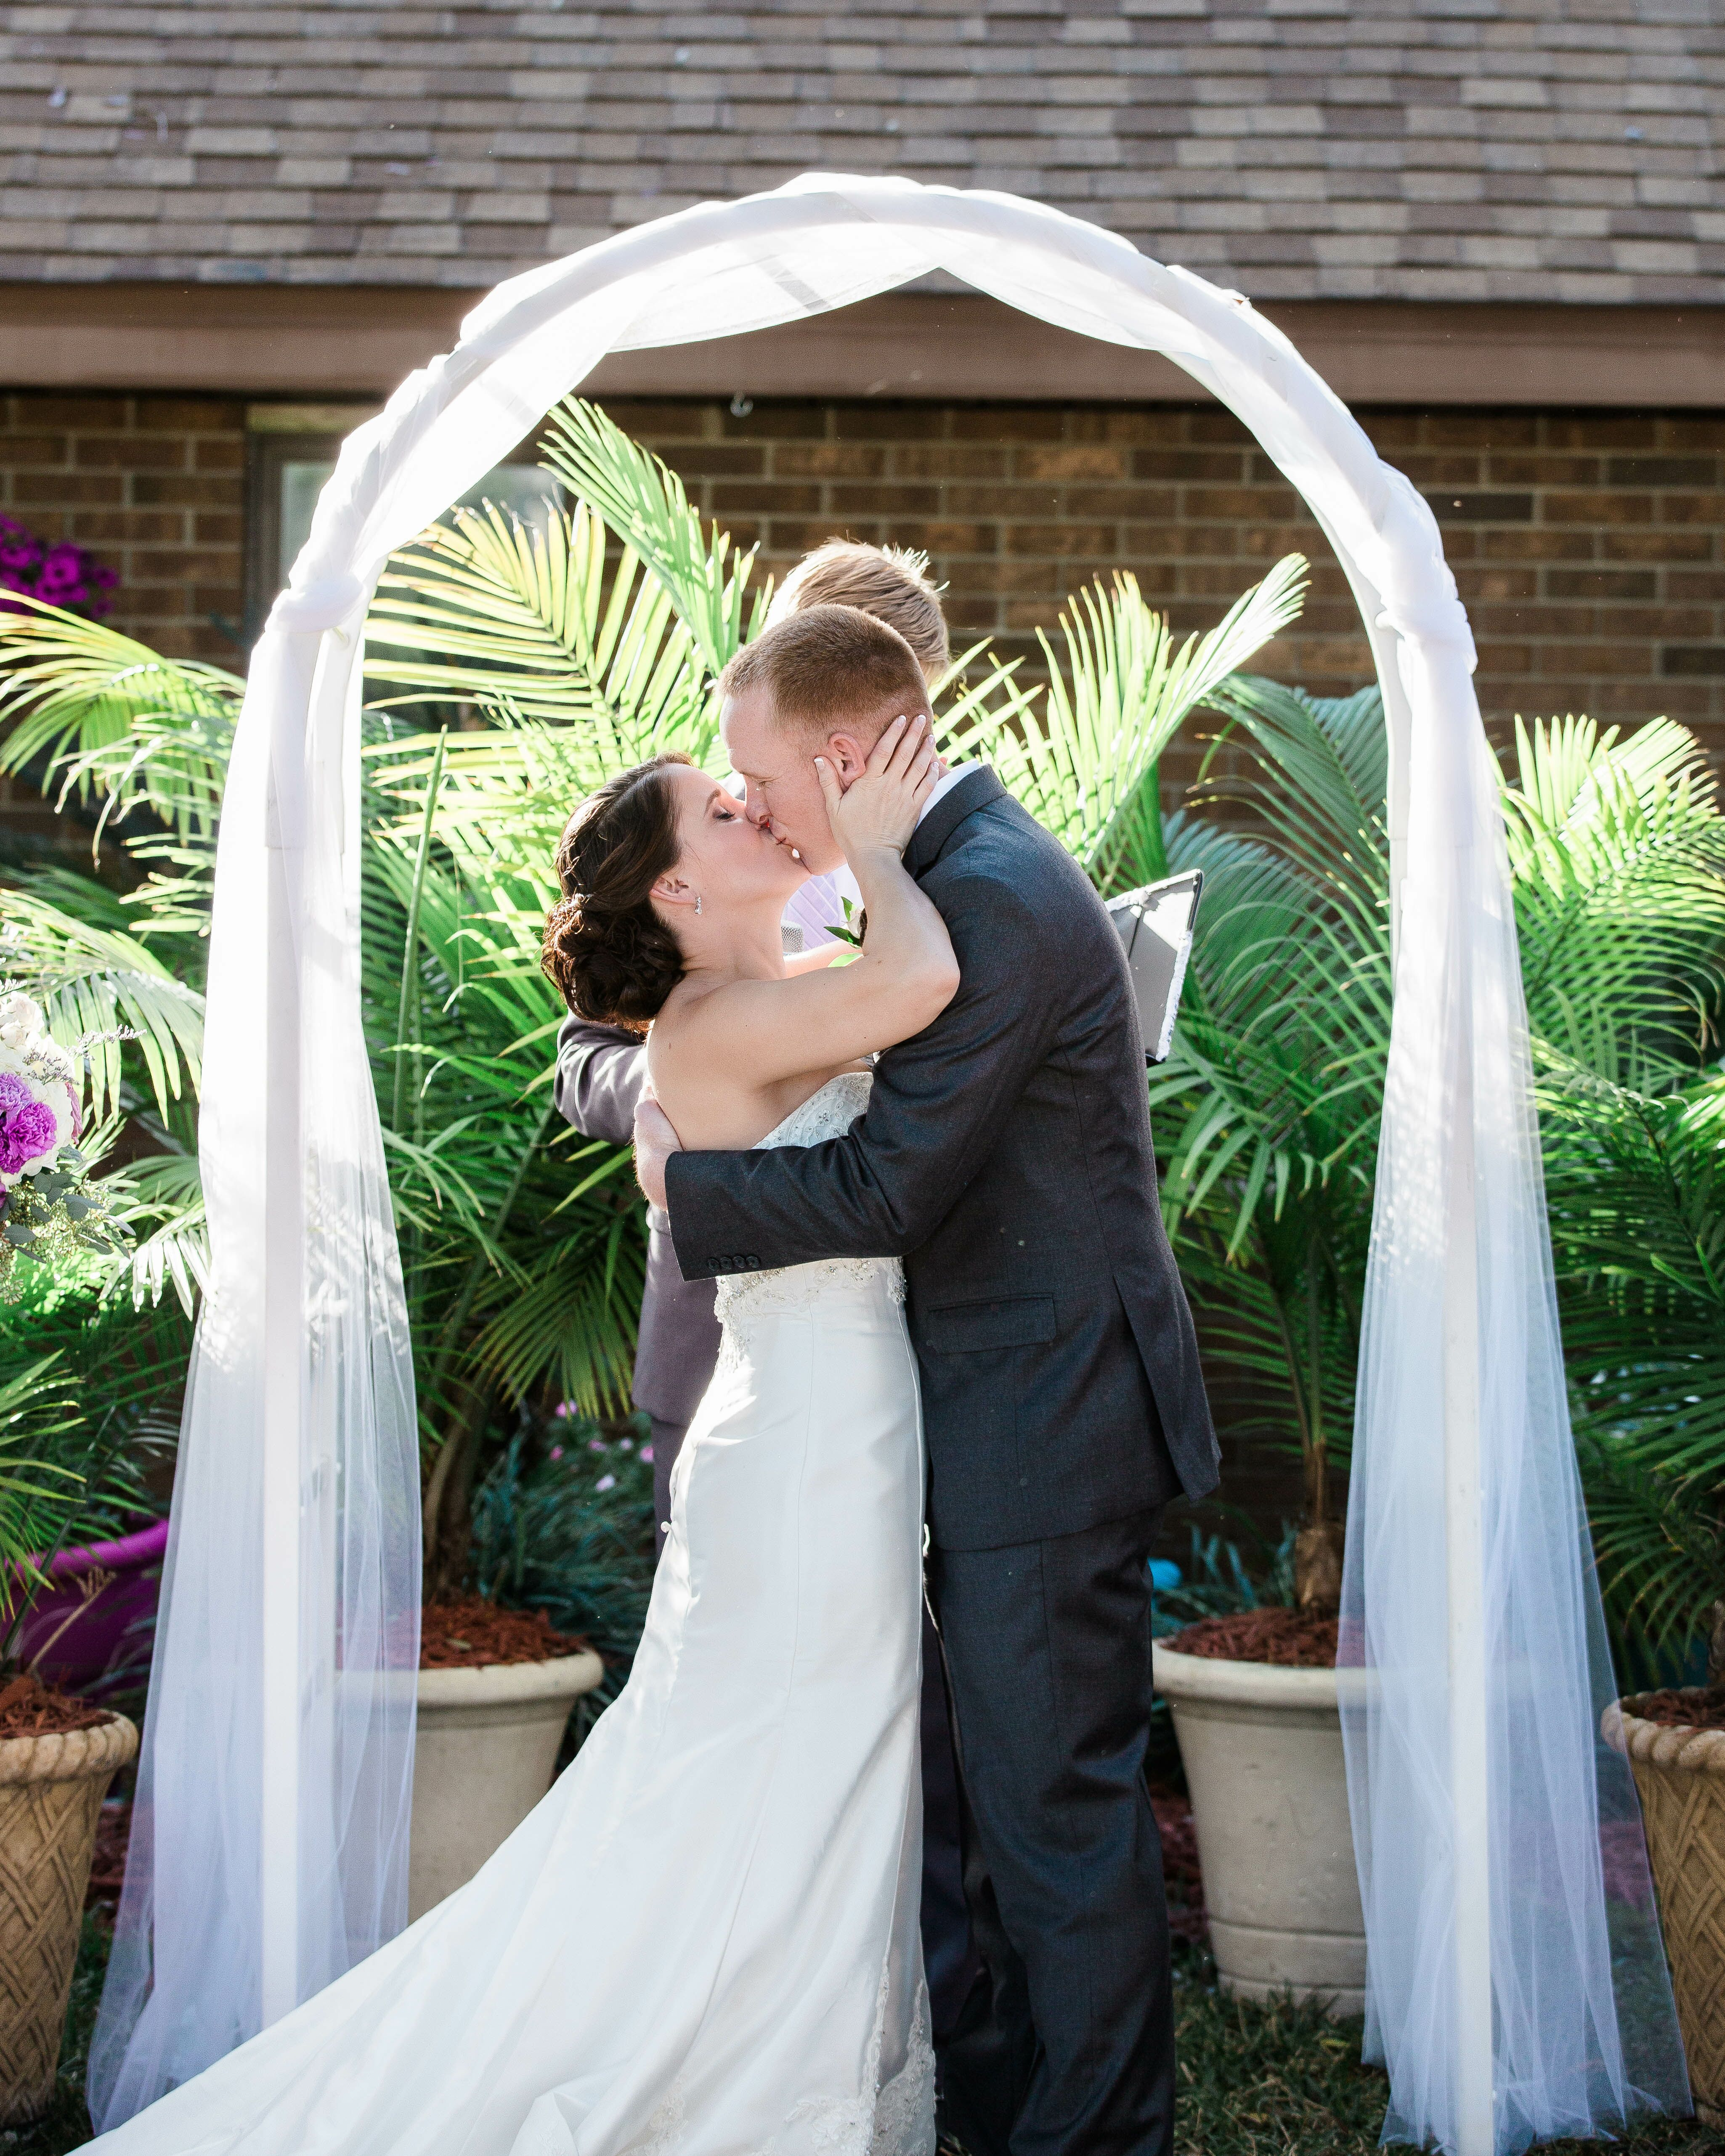 Tulle Arch Decorations Wedding Ideas: Simple White Tulle-Draped Wedding Arch In Lakeland, Florida